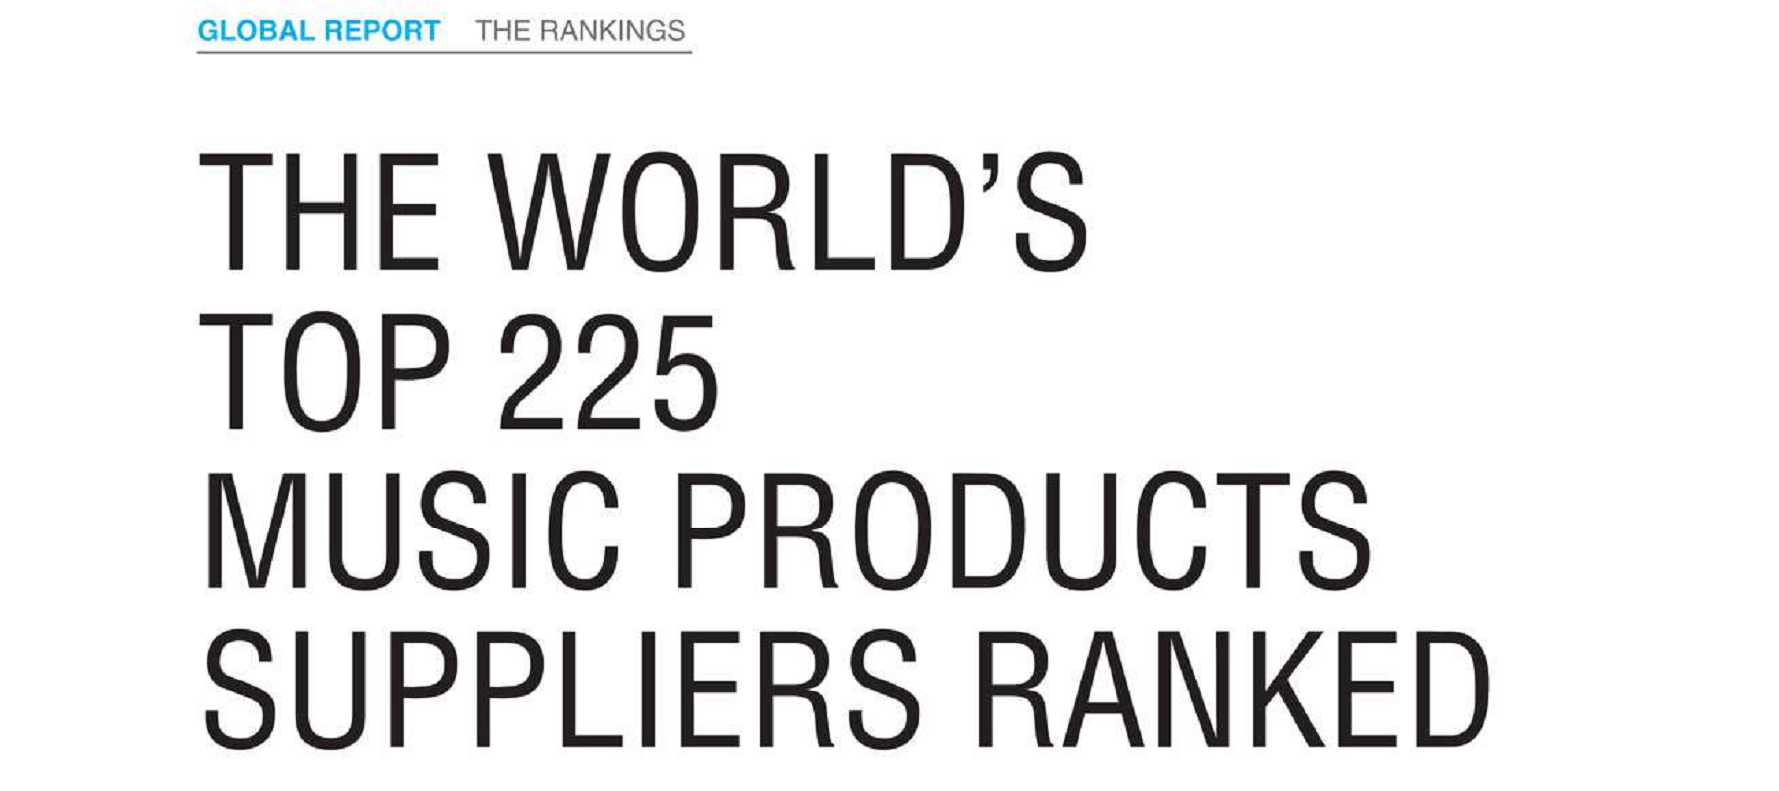 Cherub Technology ranked No. 118 of the Global 225